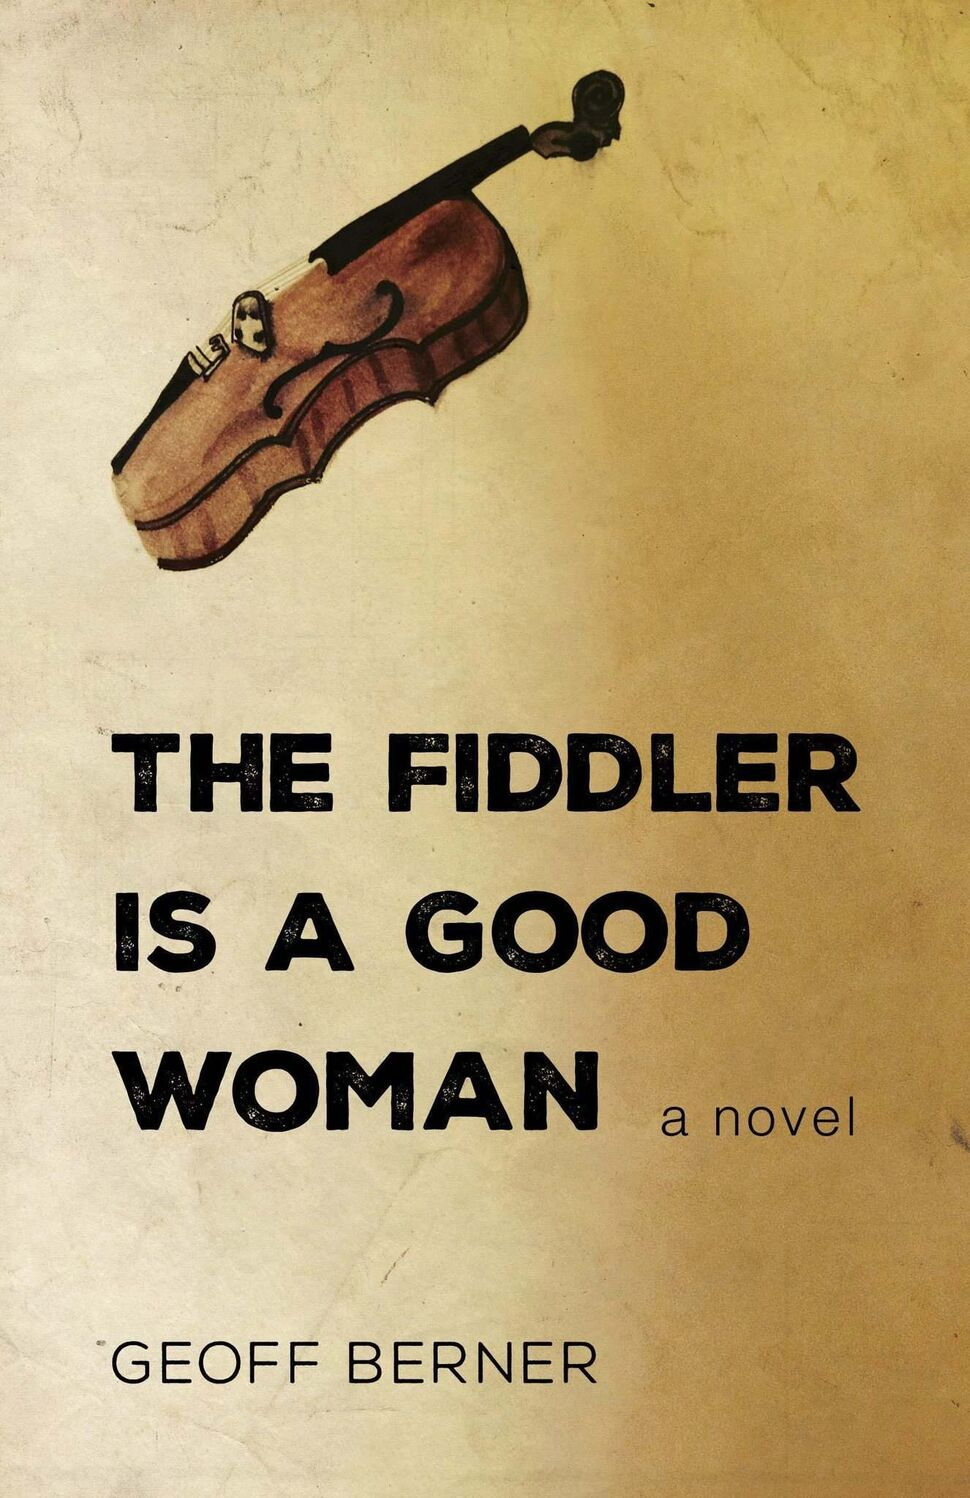 The Fiddler is a Good Woman</p><p>By Geoff Berner</p><p>Dundurn, Oct. 14</p><p>Vancouver singer-songwriter and novelist Geoff Berner (Festival Man) has written a novel about a novelist named Geoff Berner who is set to write a biography of a musician named DD &mdash; the problem being she has disappeared. With every interview of DD&rsquo;s friends, family and acquaintances, a more complex portrait of DD emerges.</p></p>